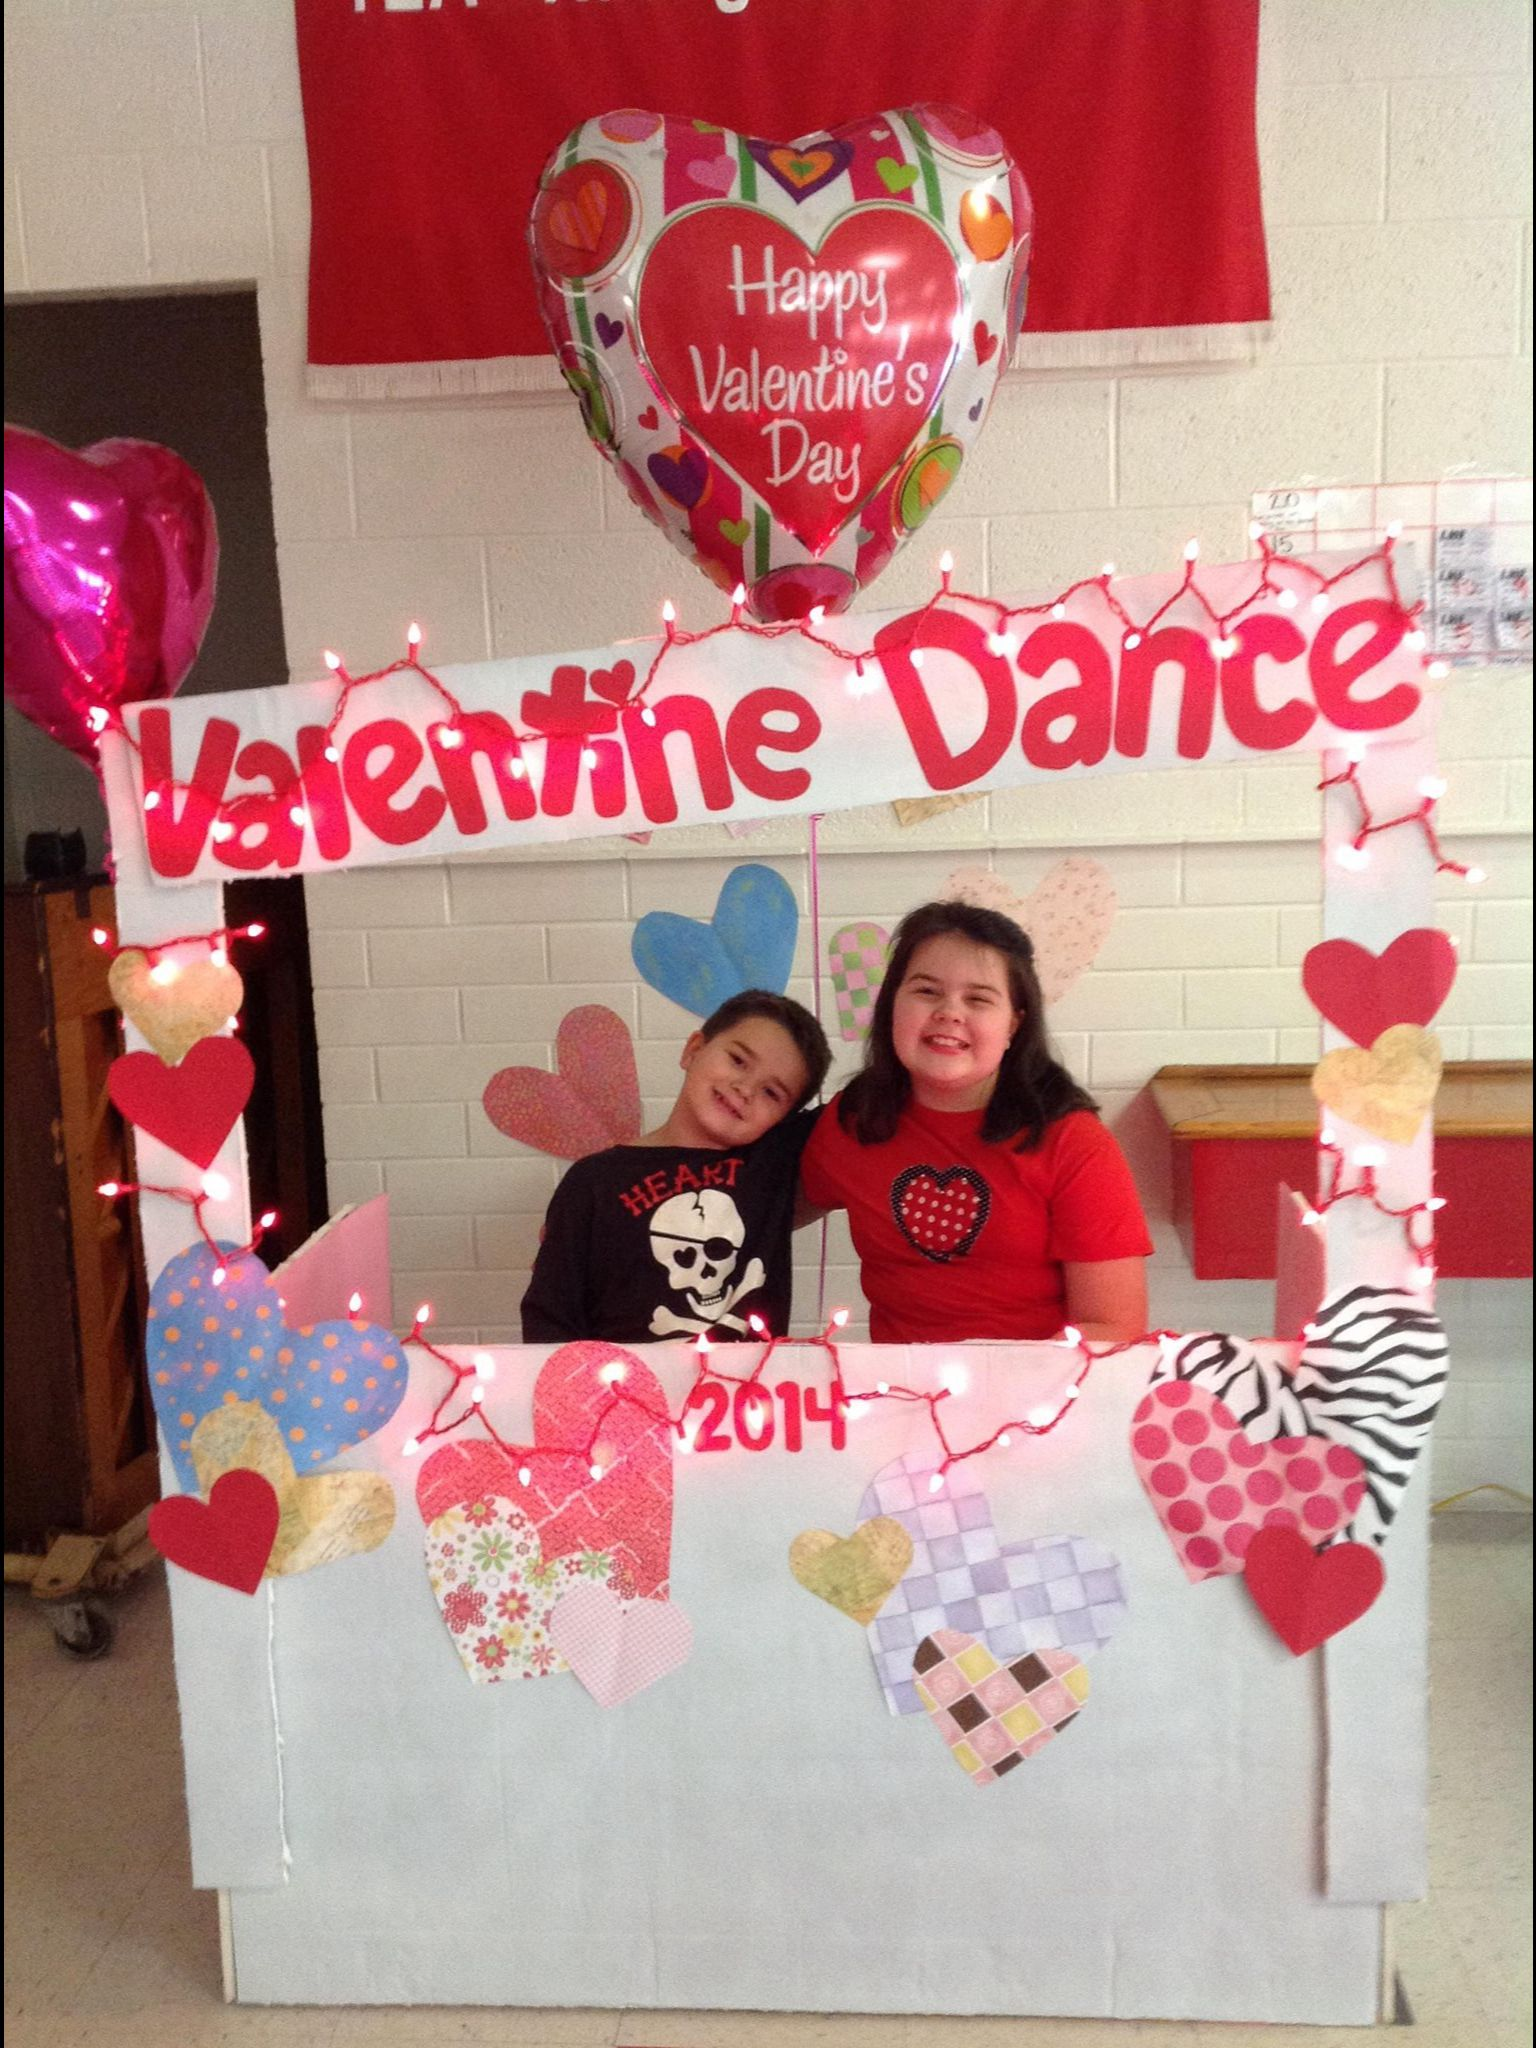 Valentine Dance Photo Booth For Elementary School